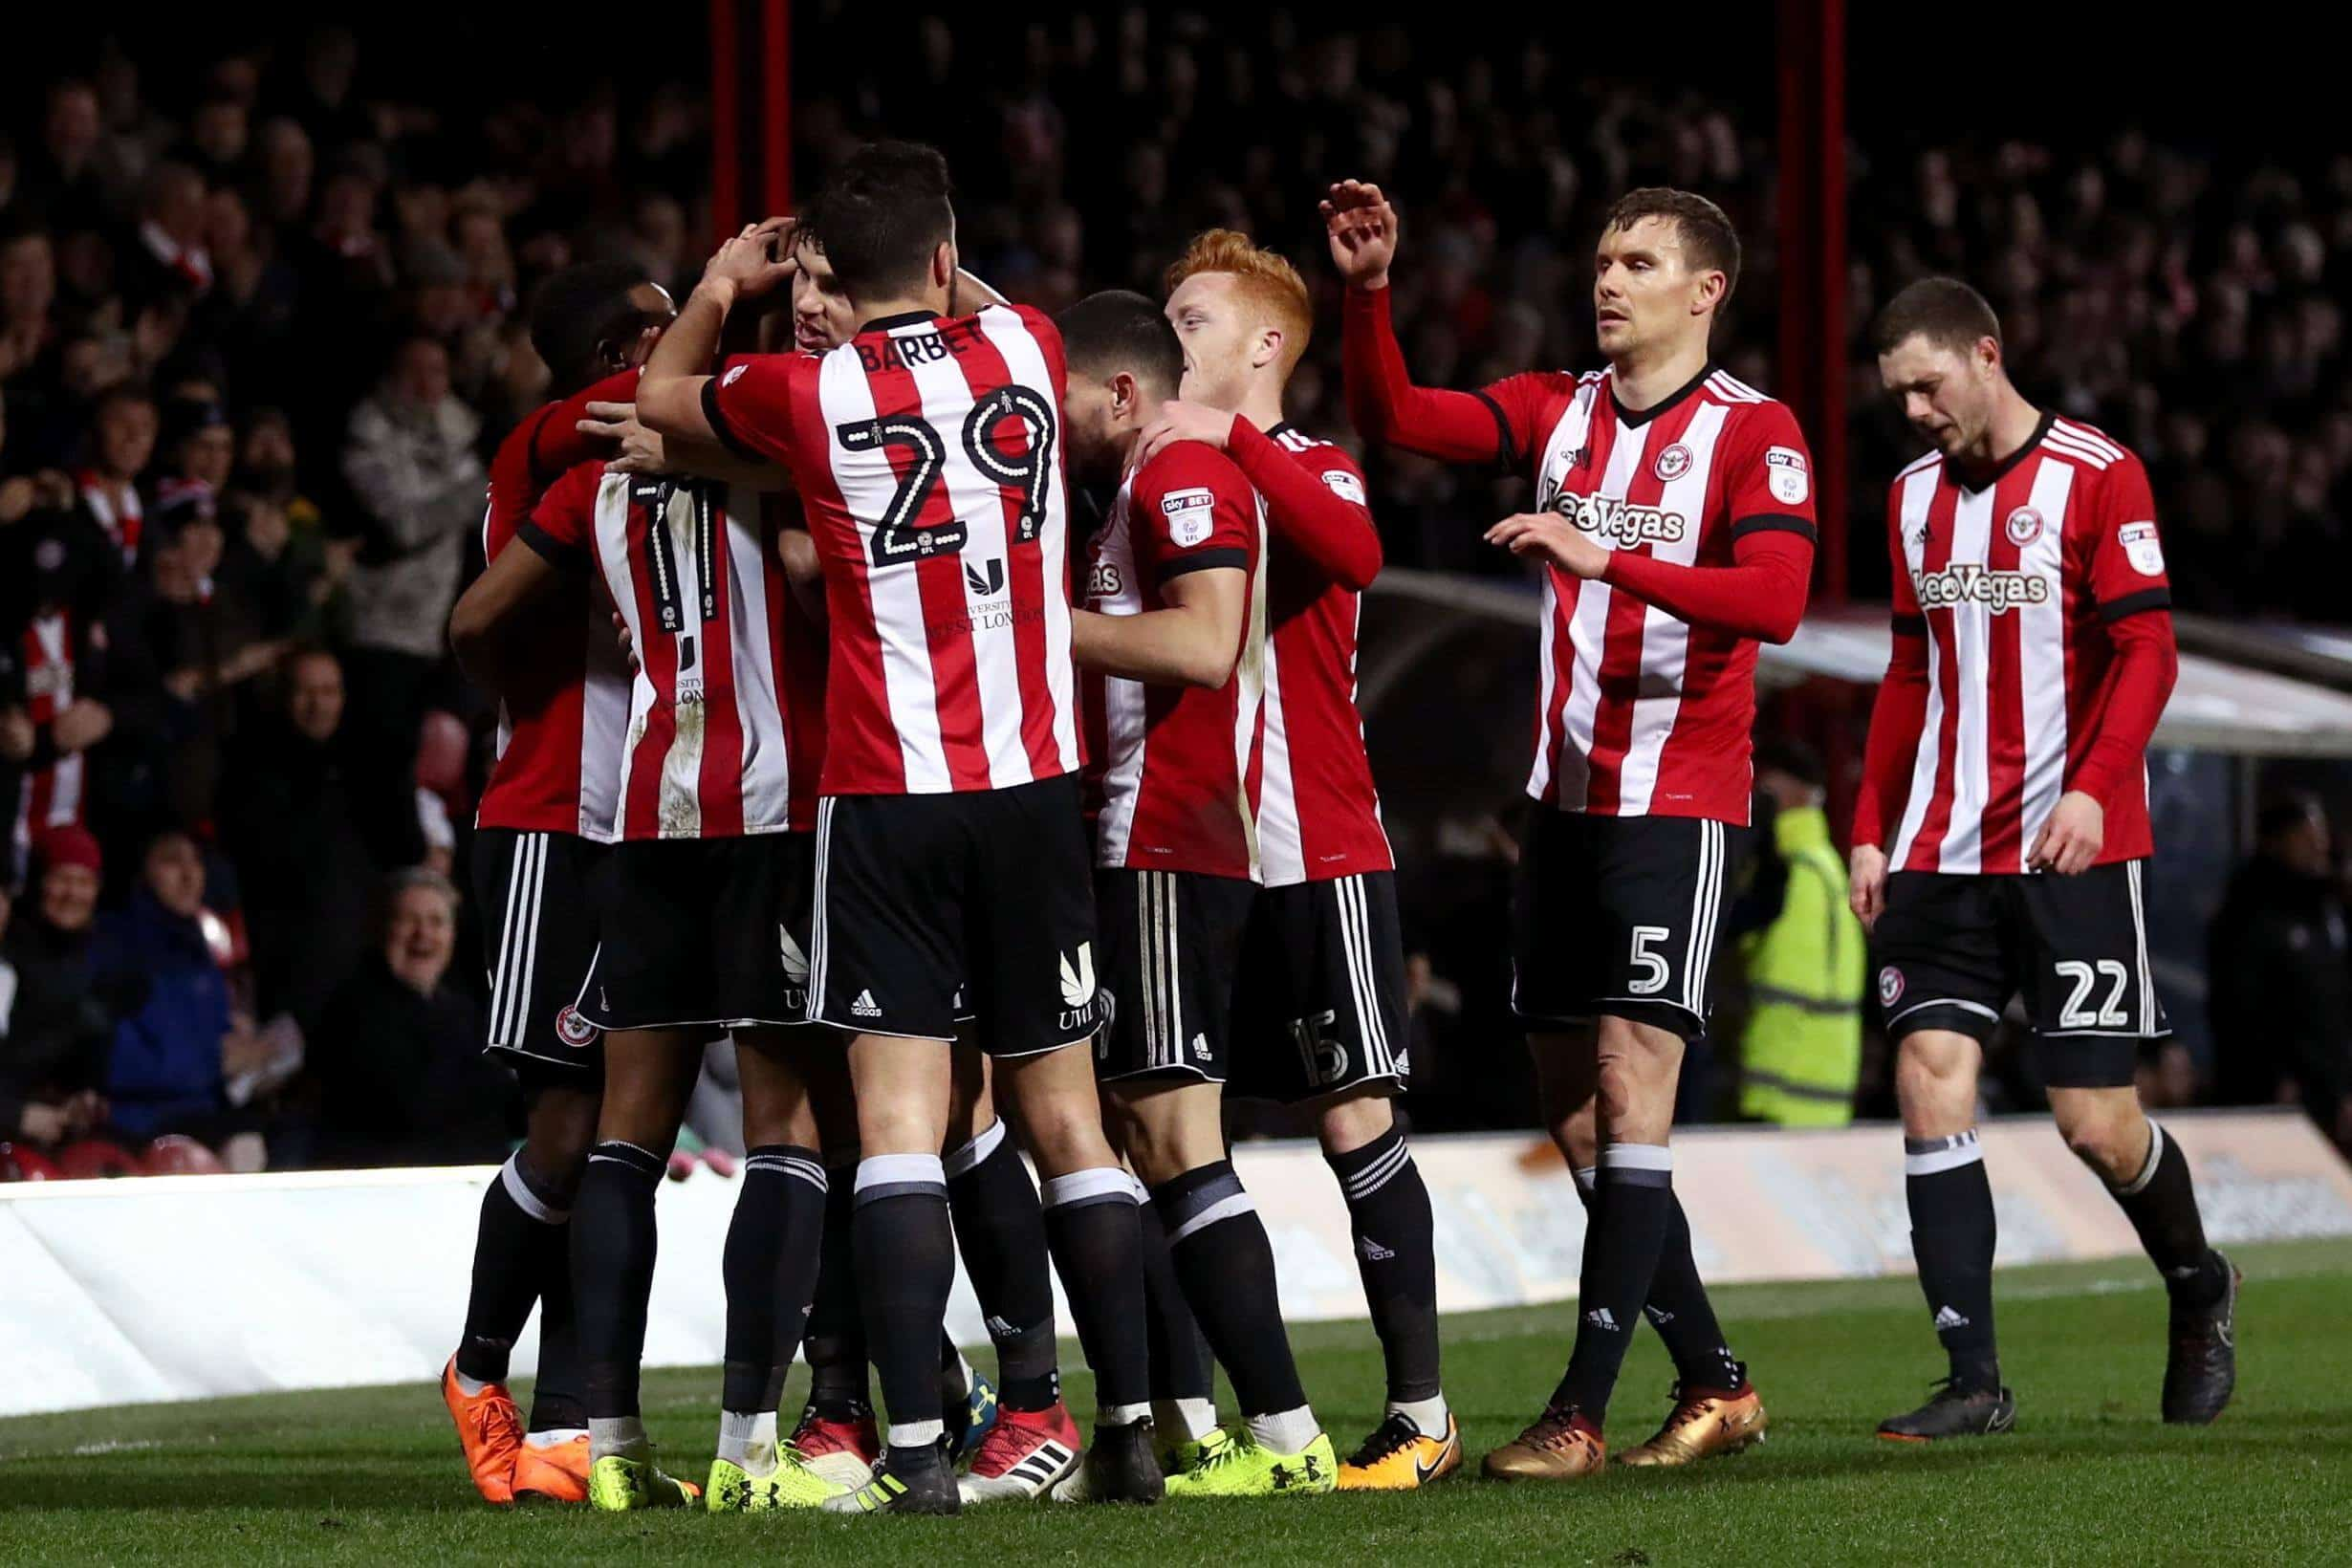 BRENTFORD football team 2019